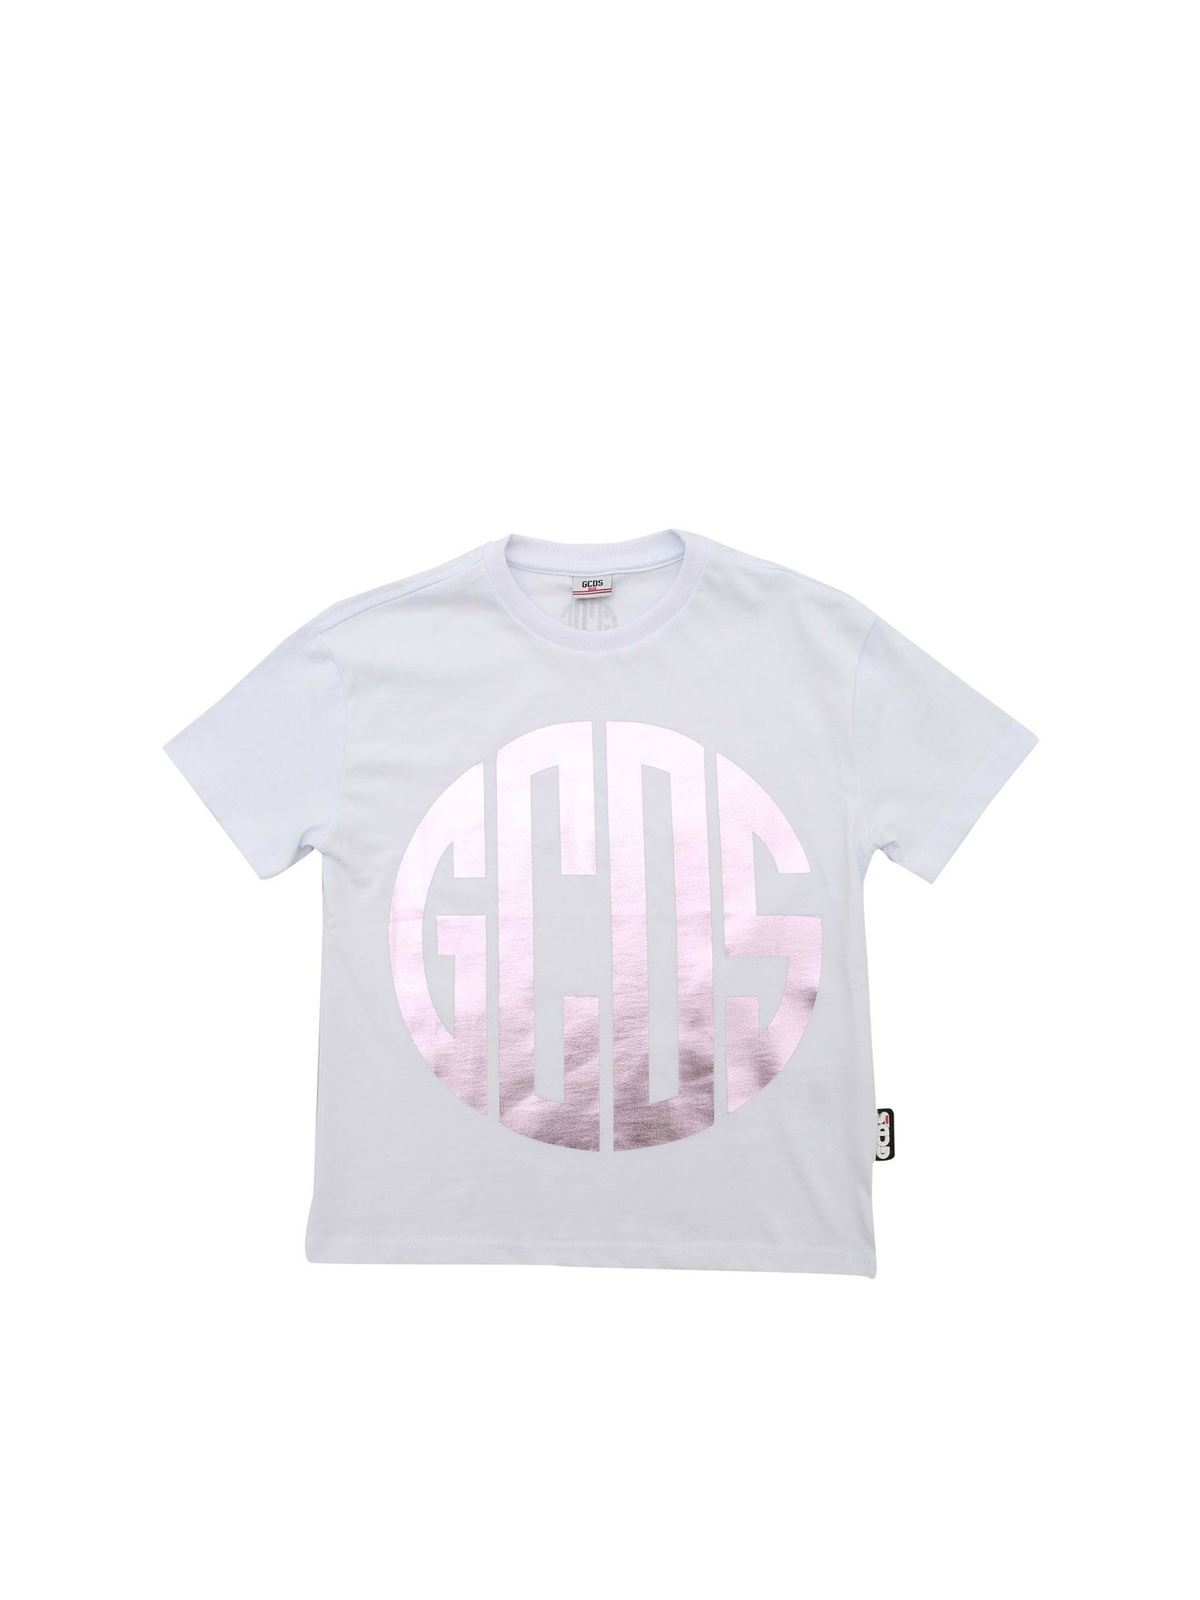 Gcds Cottons LAMINATED LOGO T-SHIRT IN WHITE